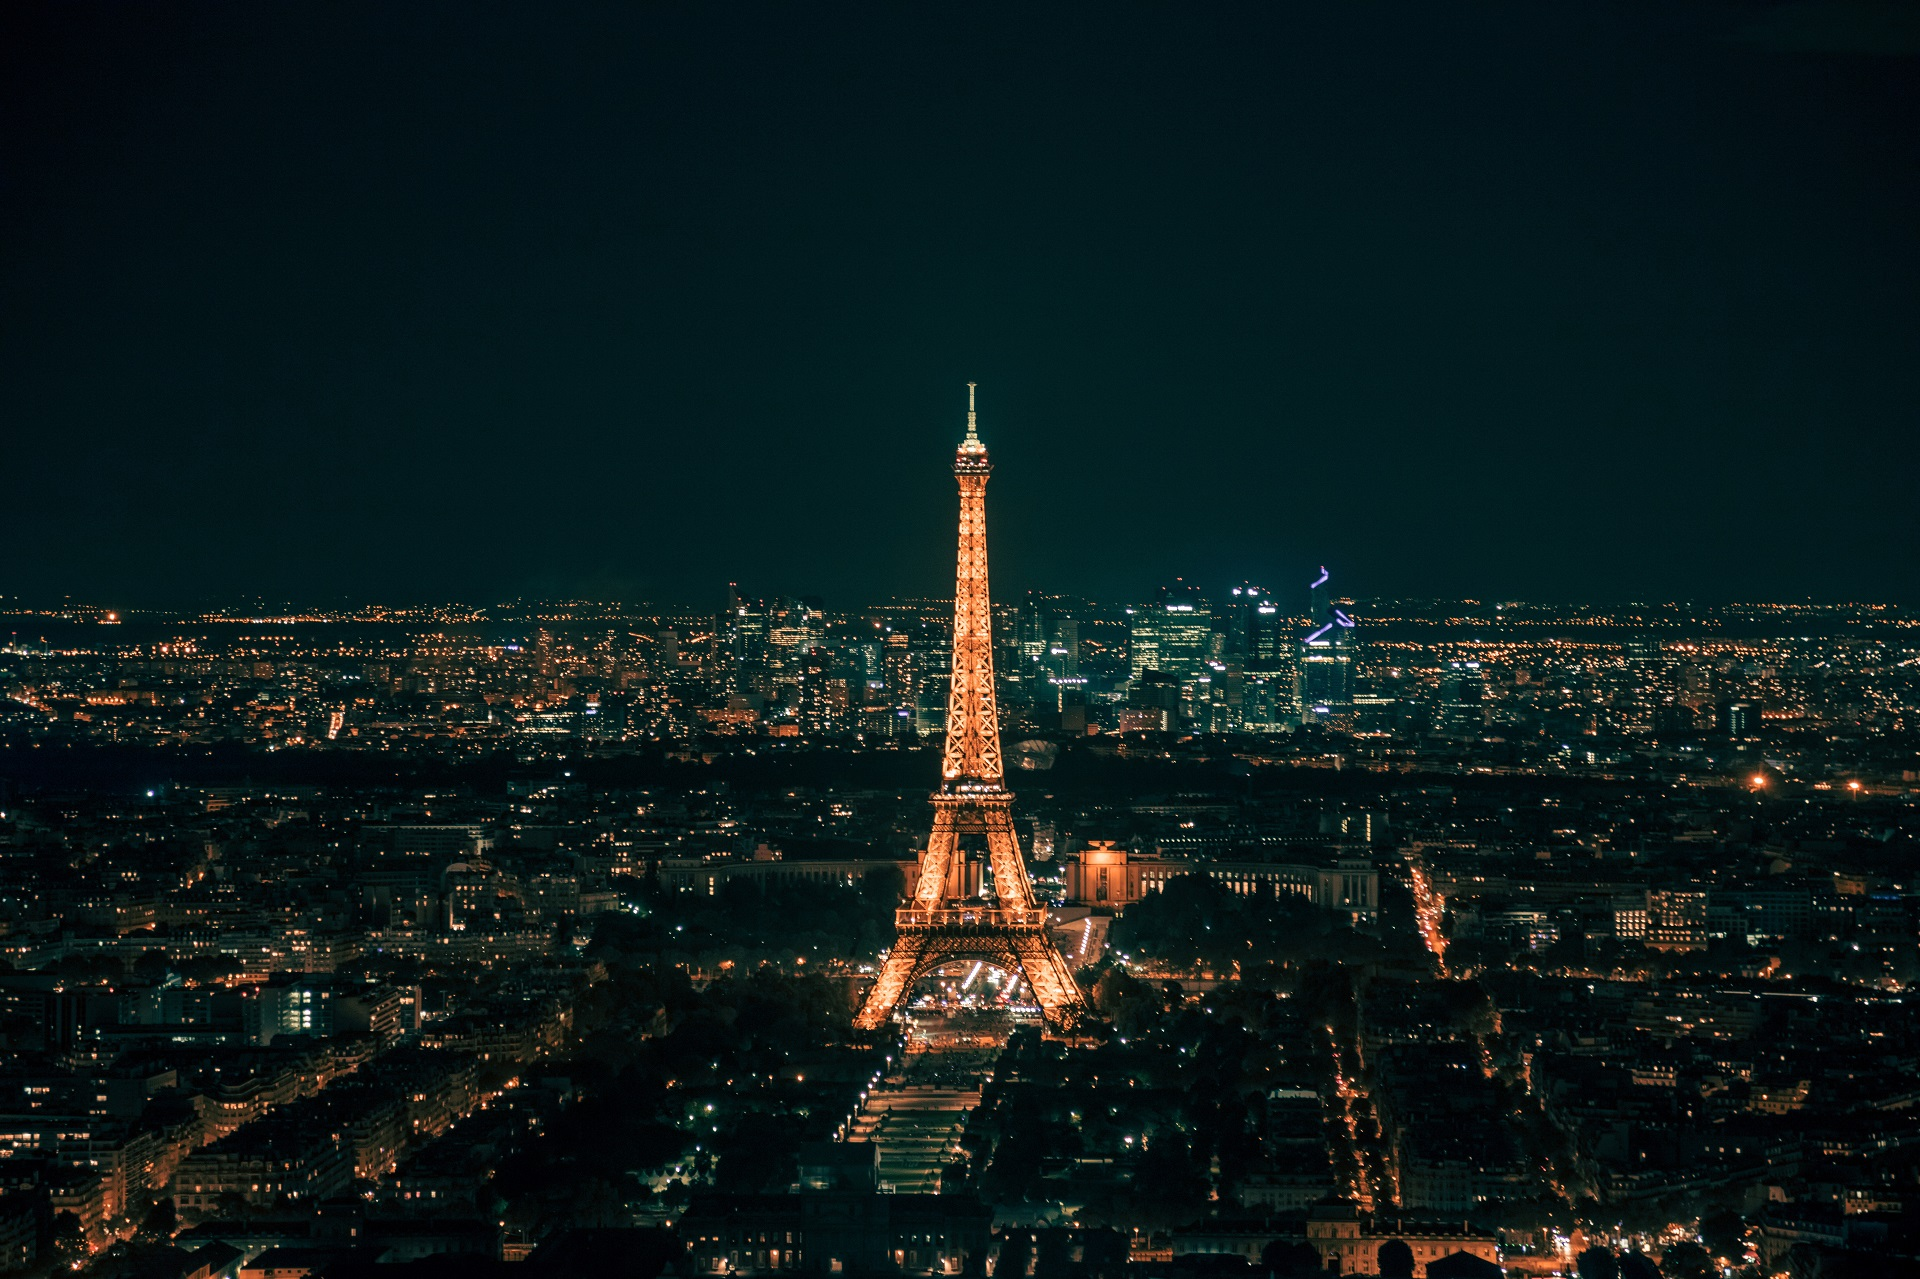 Tour Eiffel & Paris by night